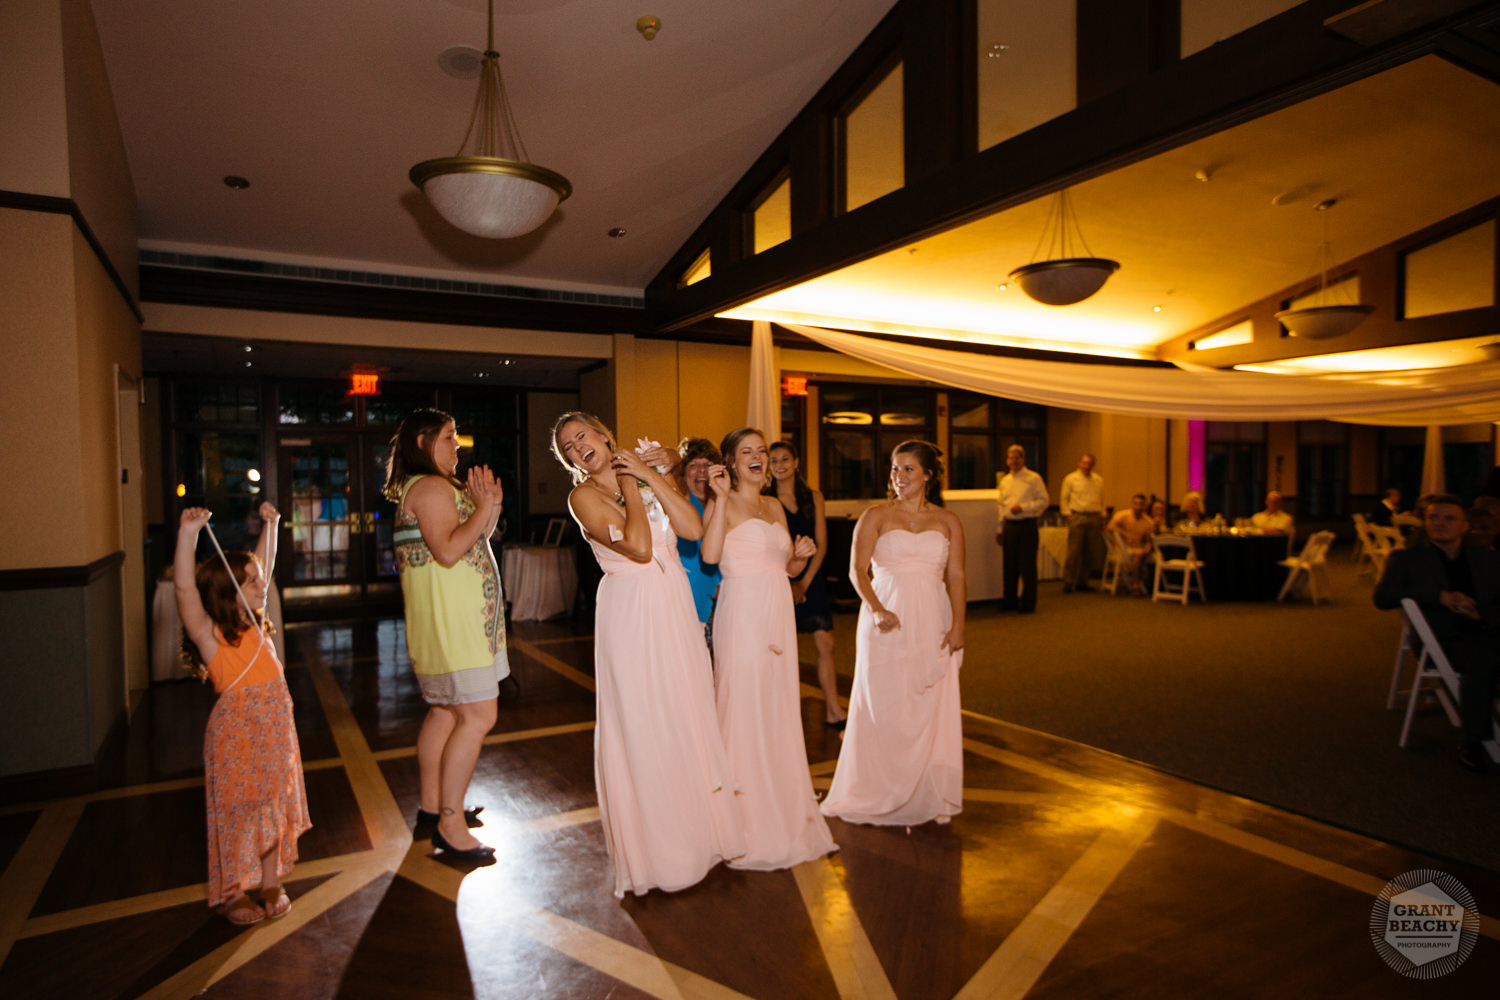 Grant Beachy wedding photography southbend goshen chicago-51.jpg